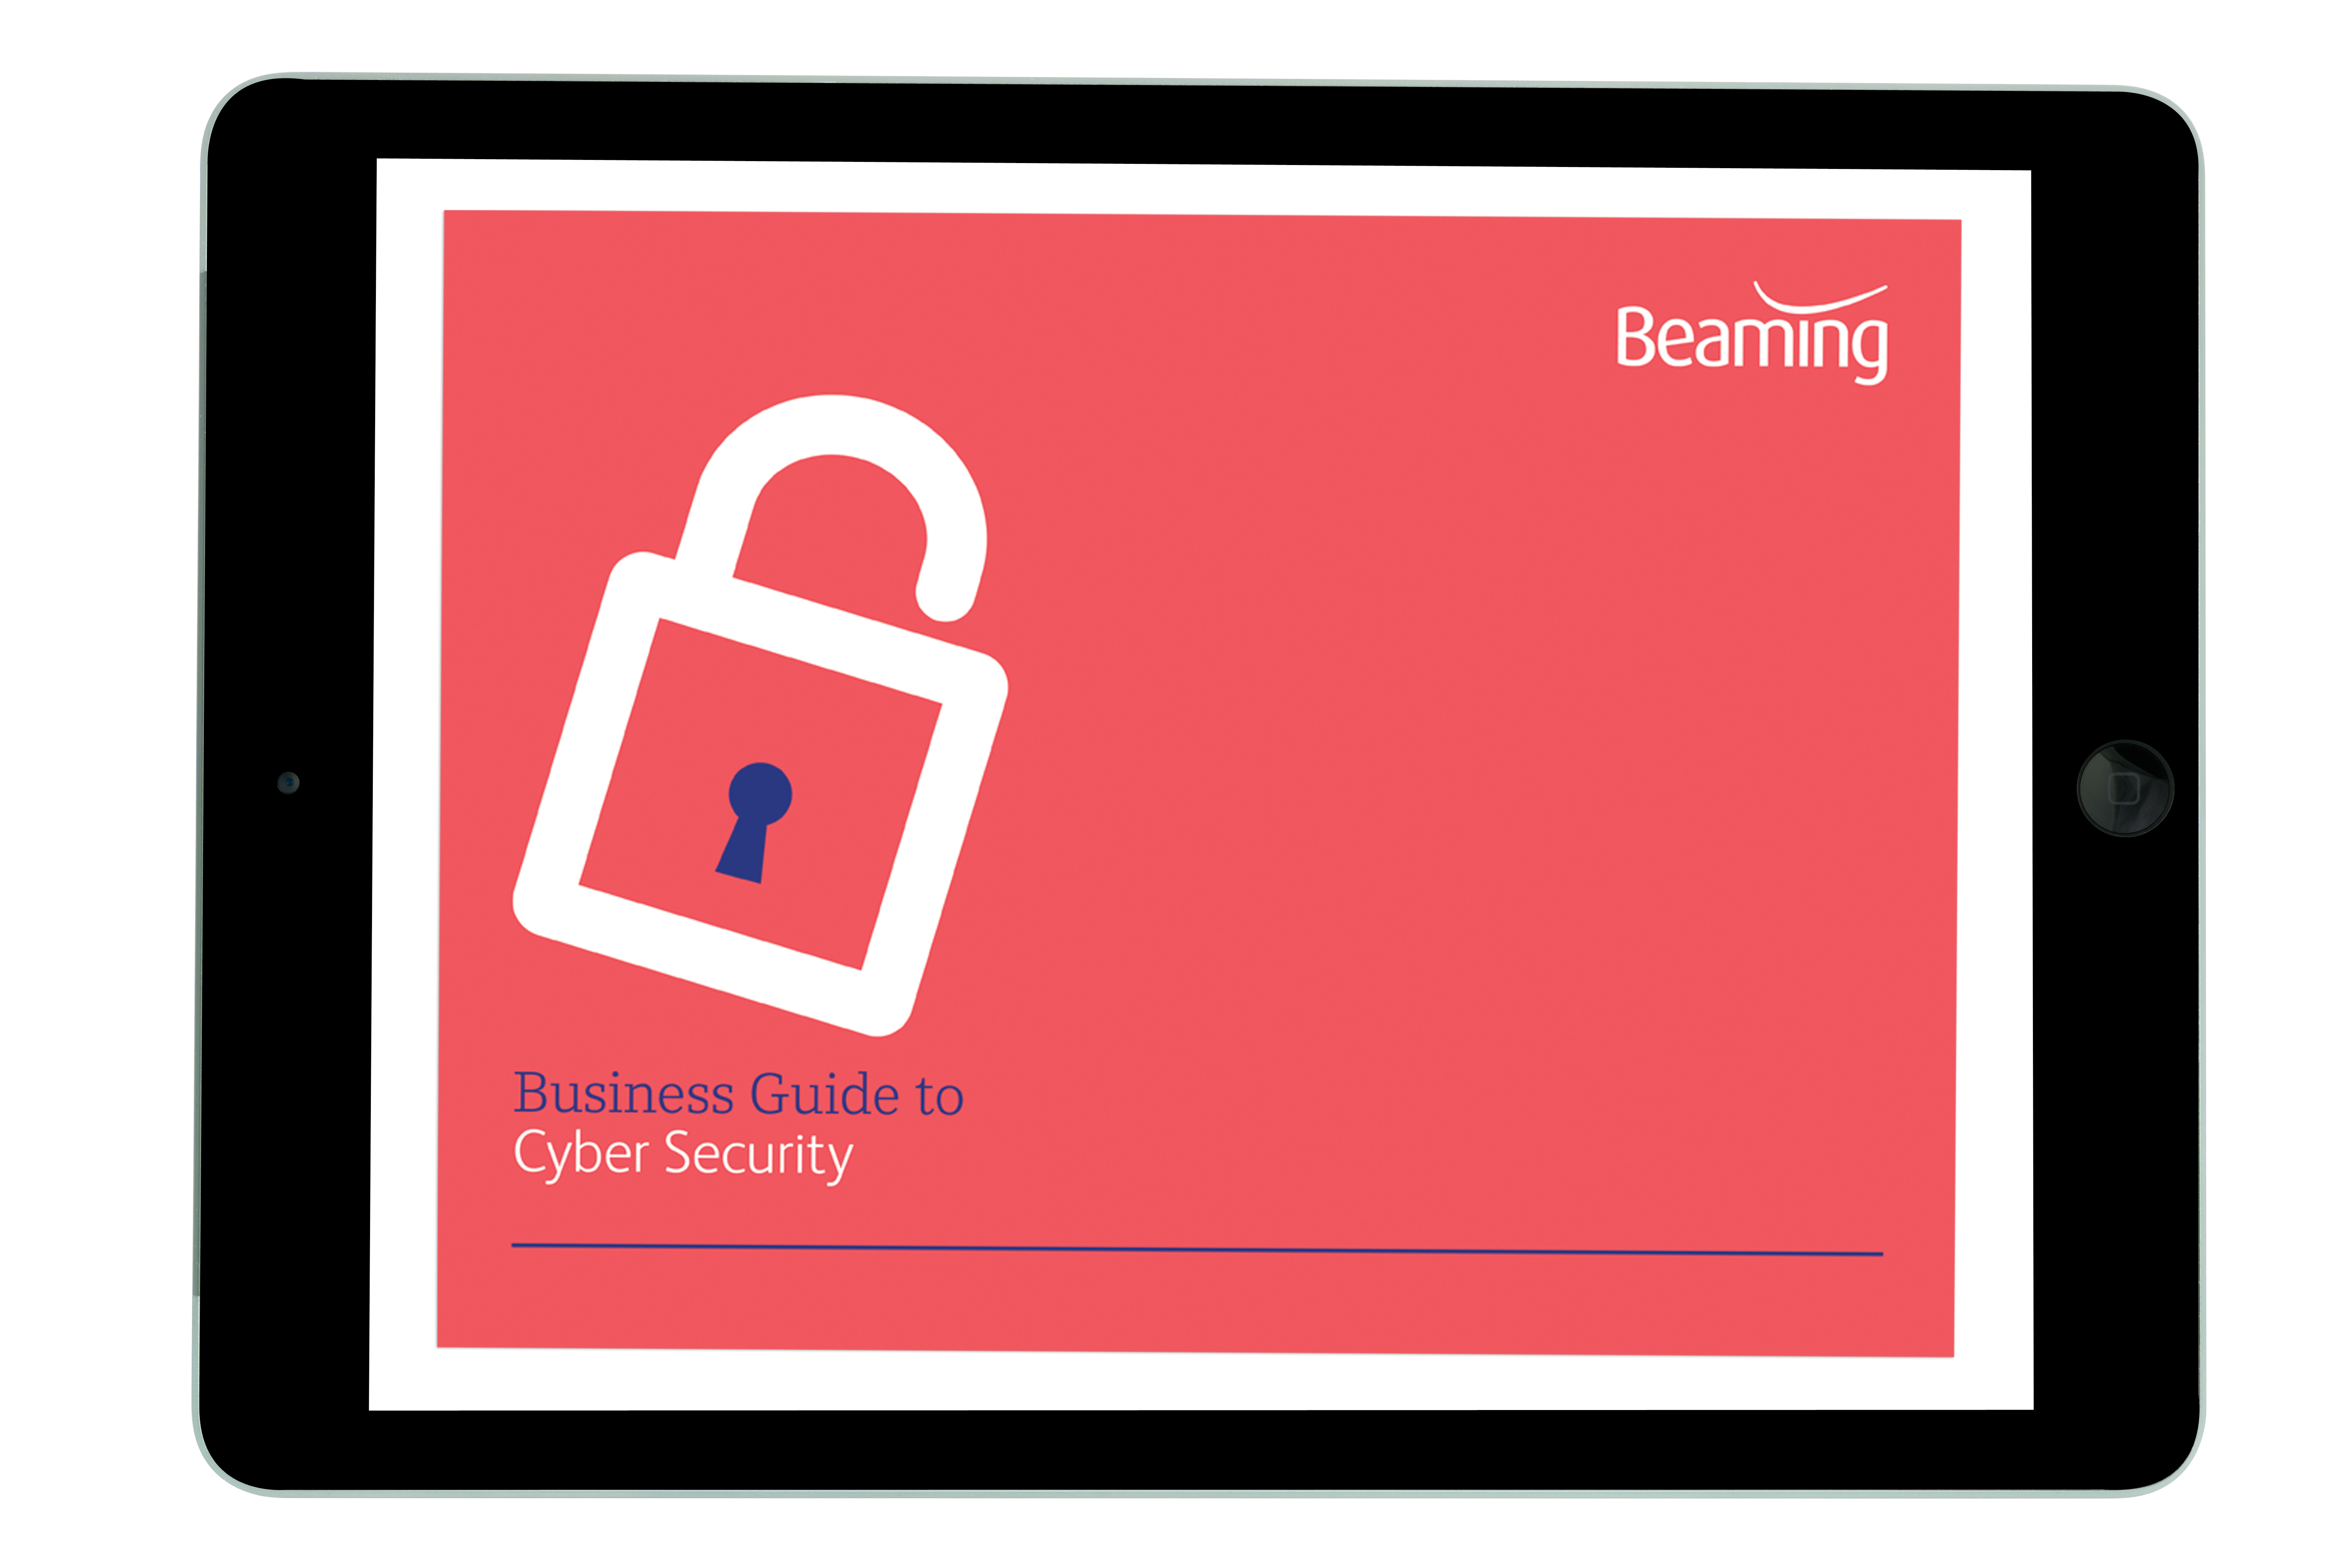 Beaming Business Guide to Cyber Security